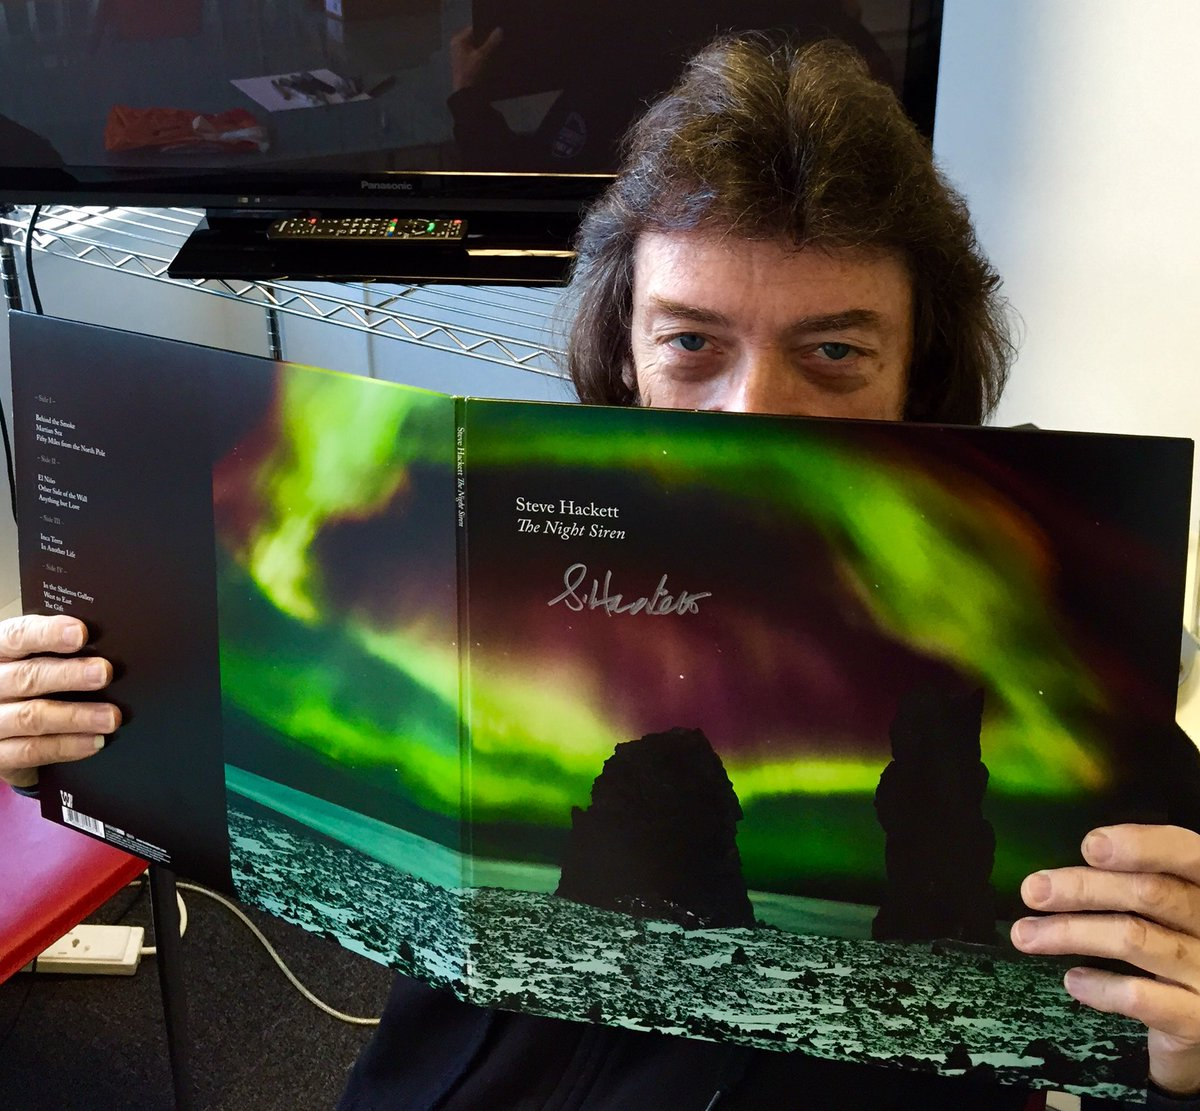 Steve Hackett On Twitter My New Album The Night Siren Is Out This